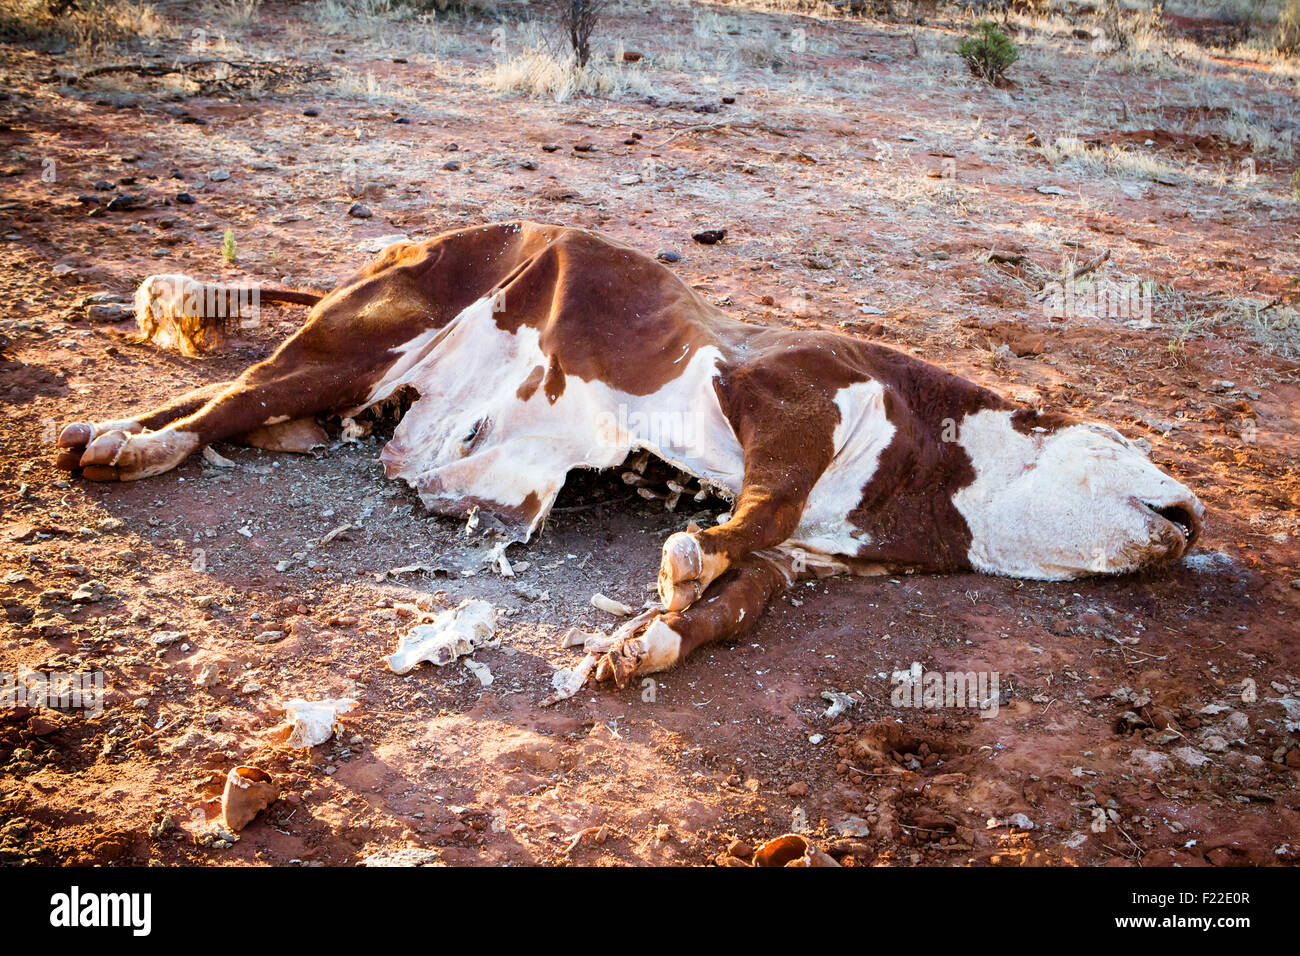 A cow succumbs to the Australian Outback heat near Gemtree in the Northern Territory, Australia - Stock Image